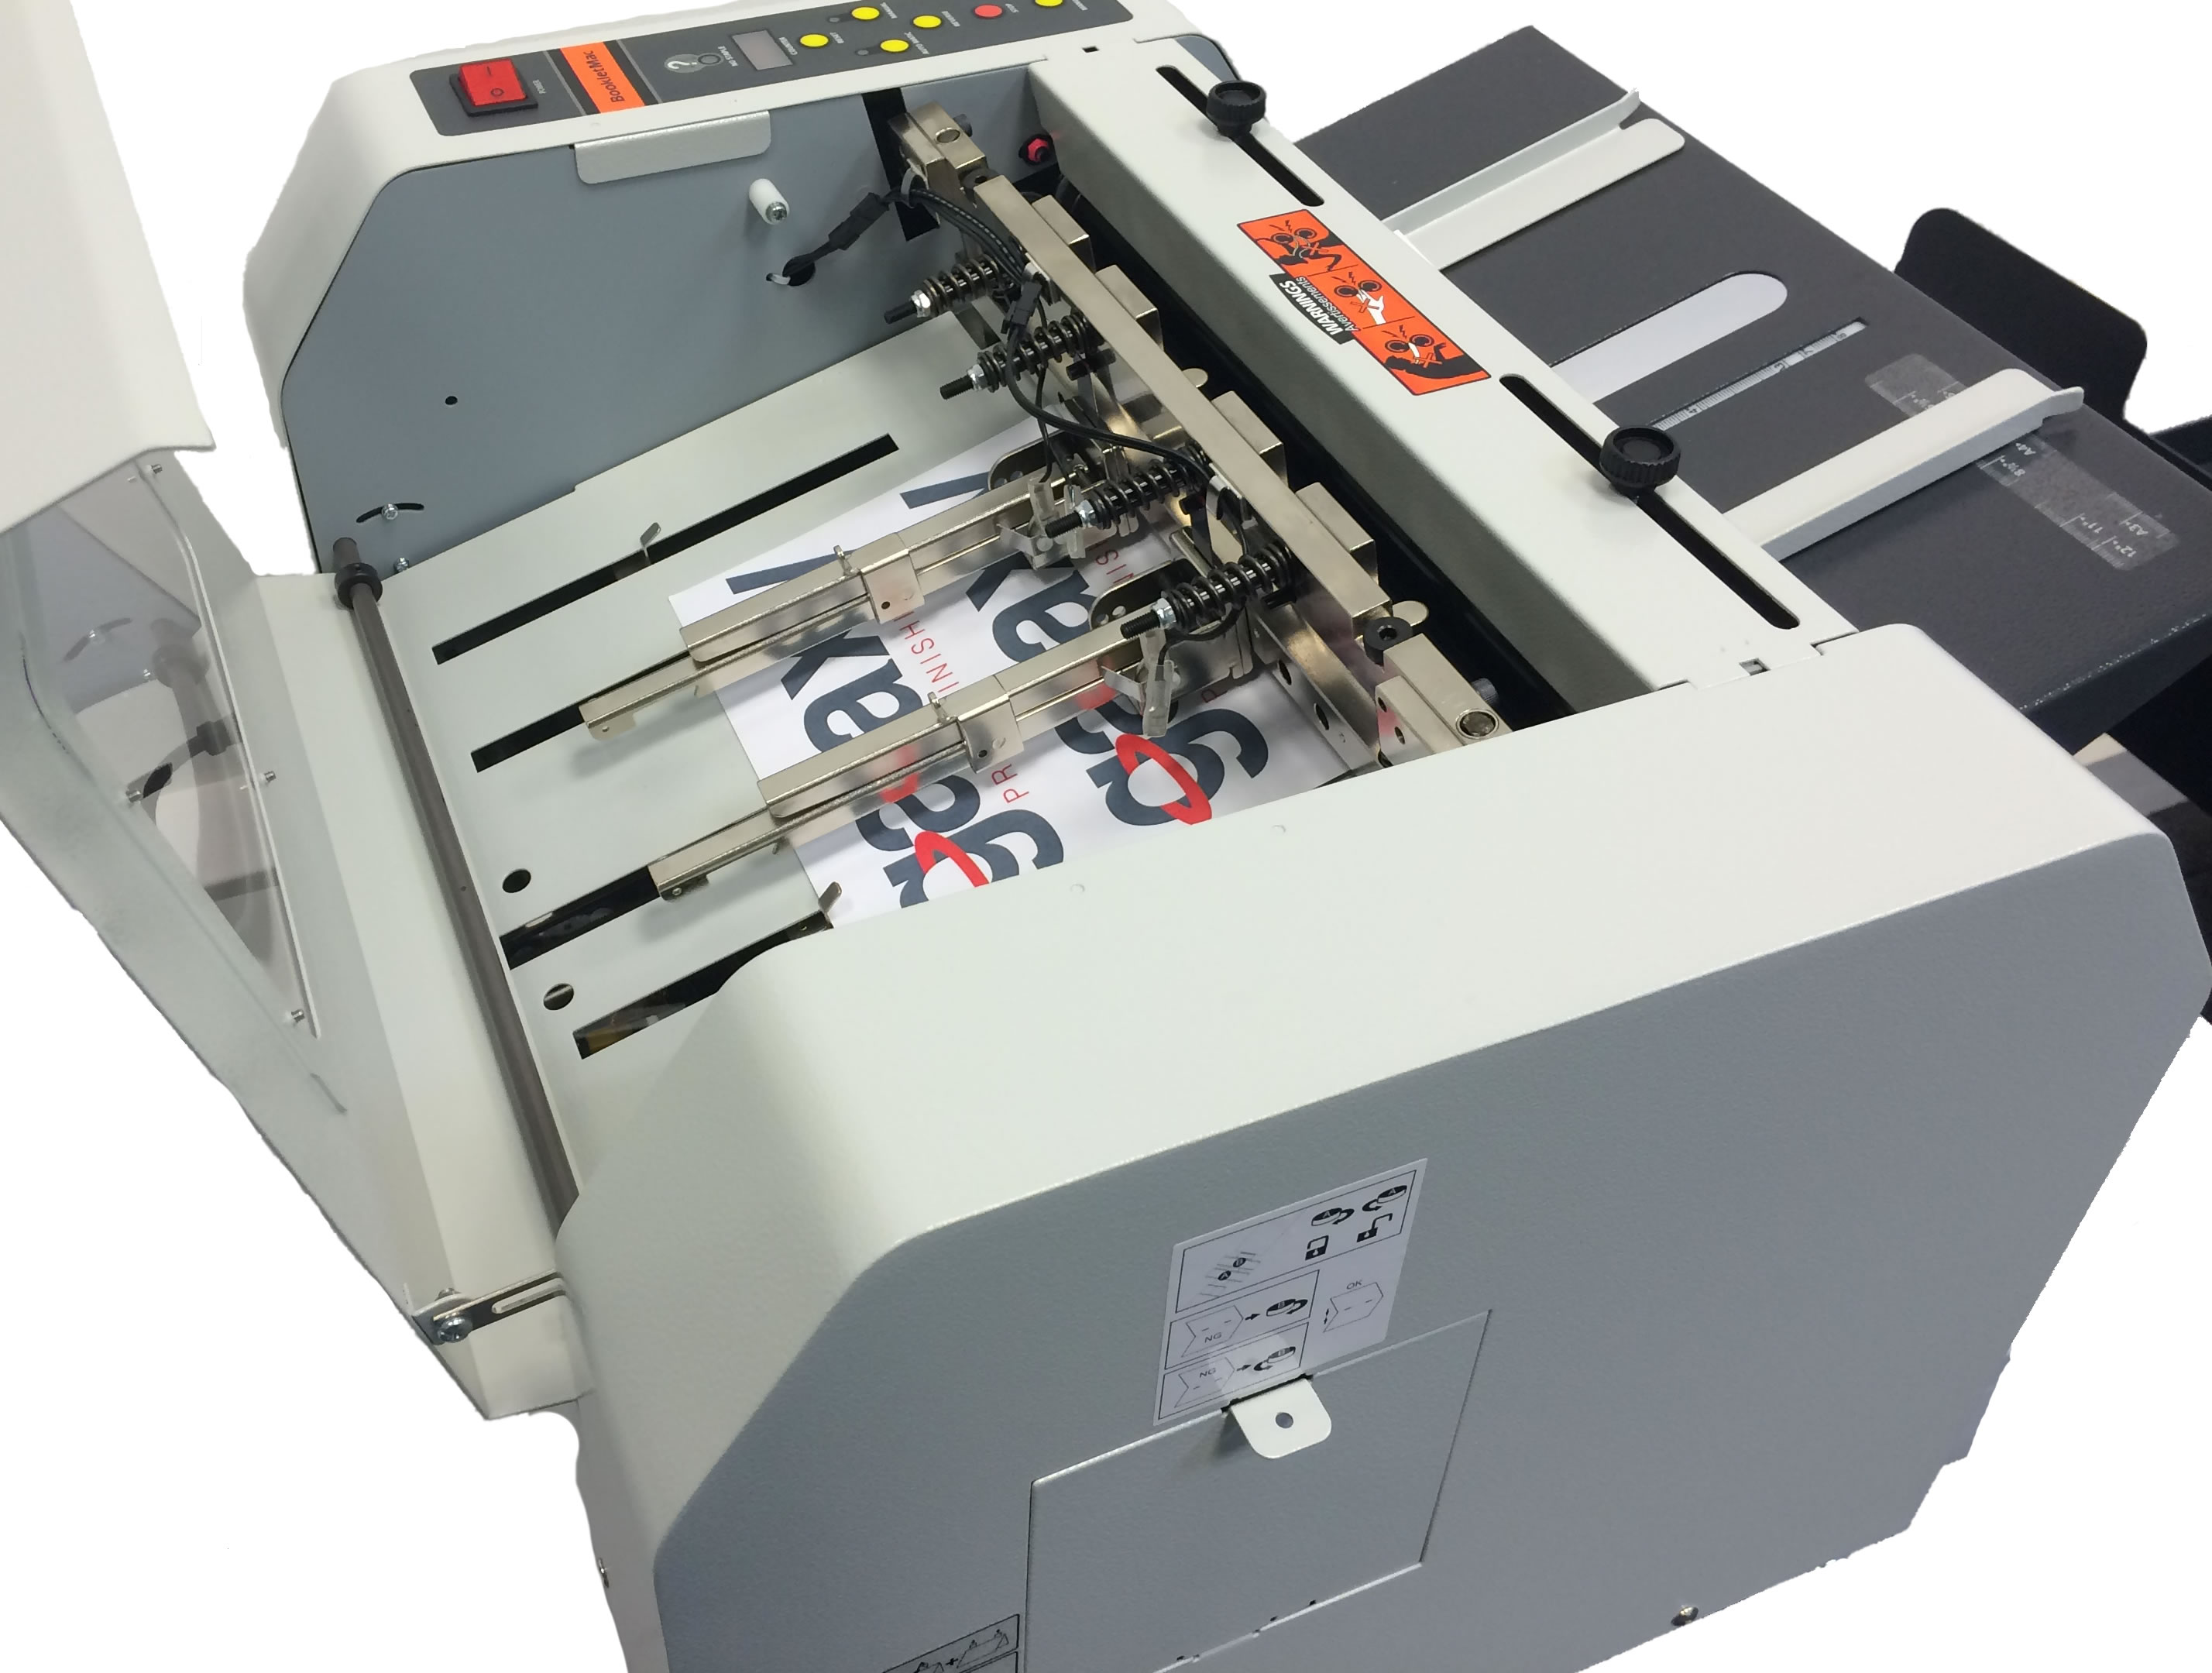 Galaxy VR-930 booklet maker